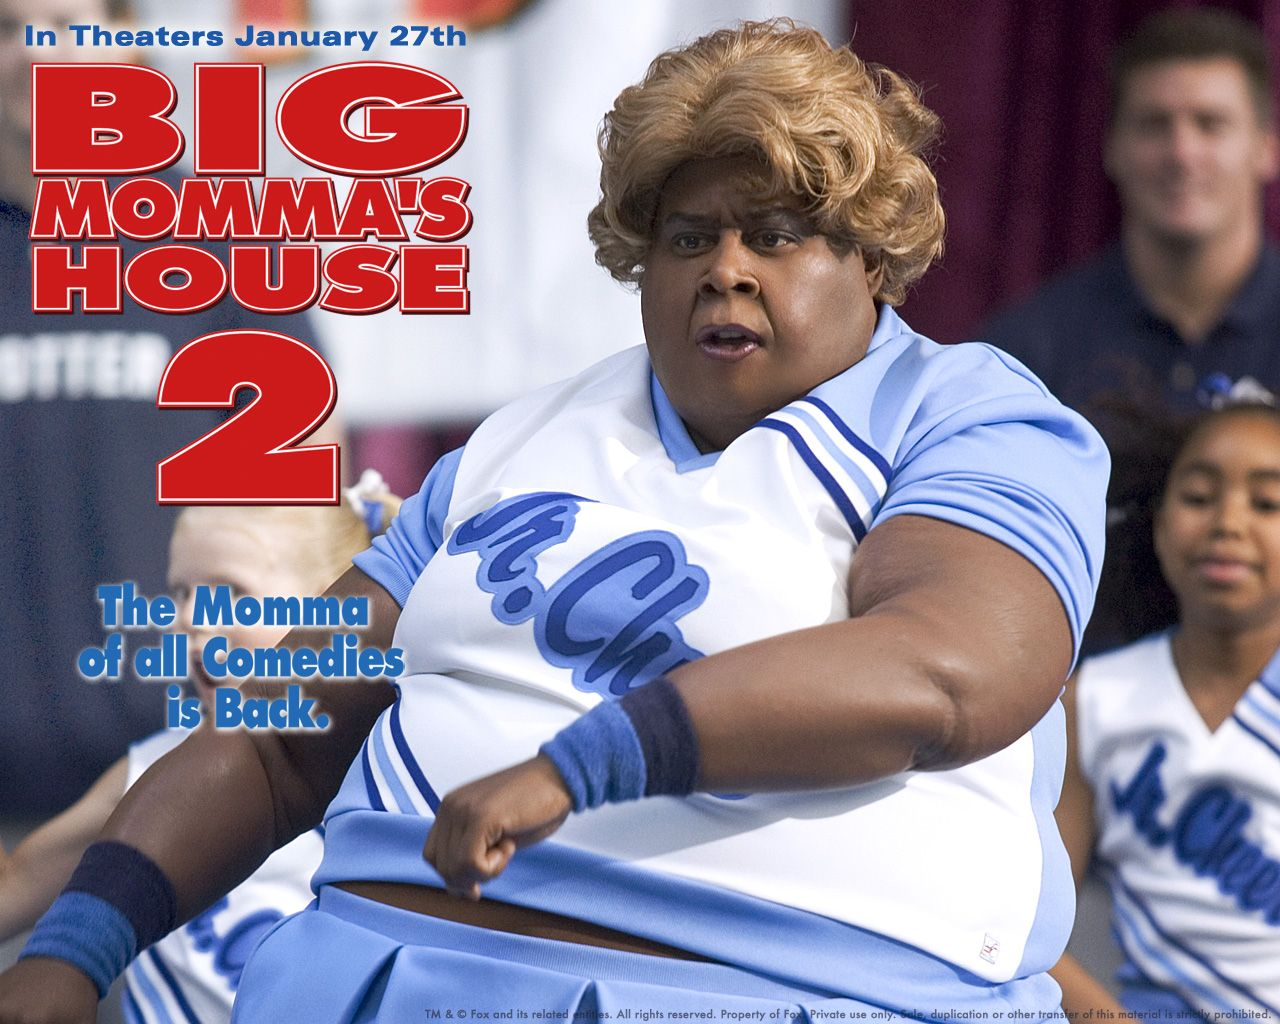 watch streaming hd big mommas house 2 starring martin